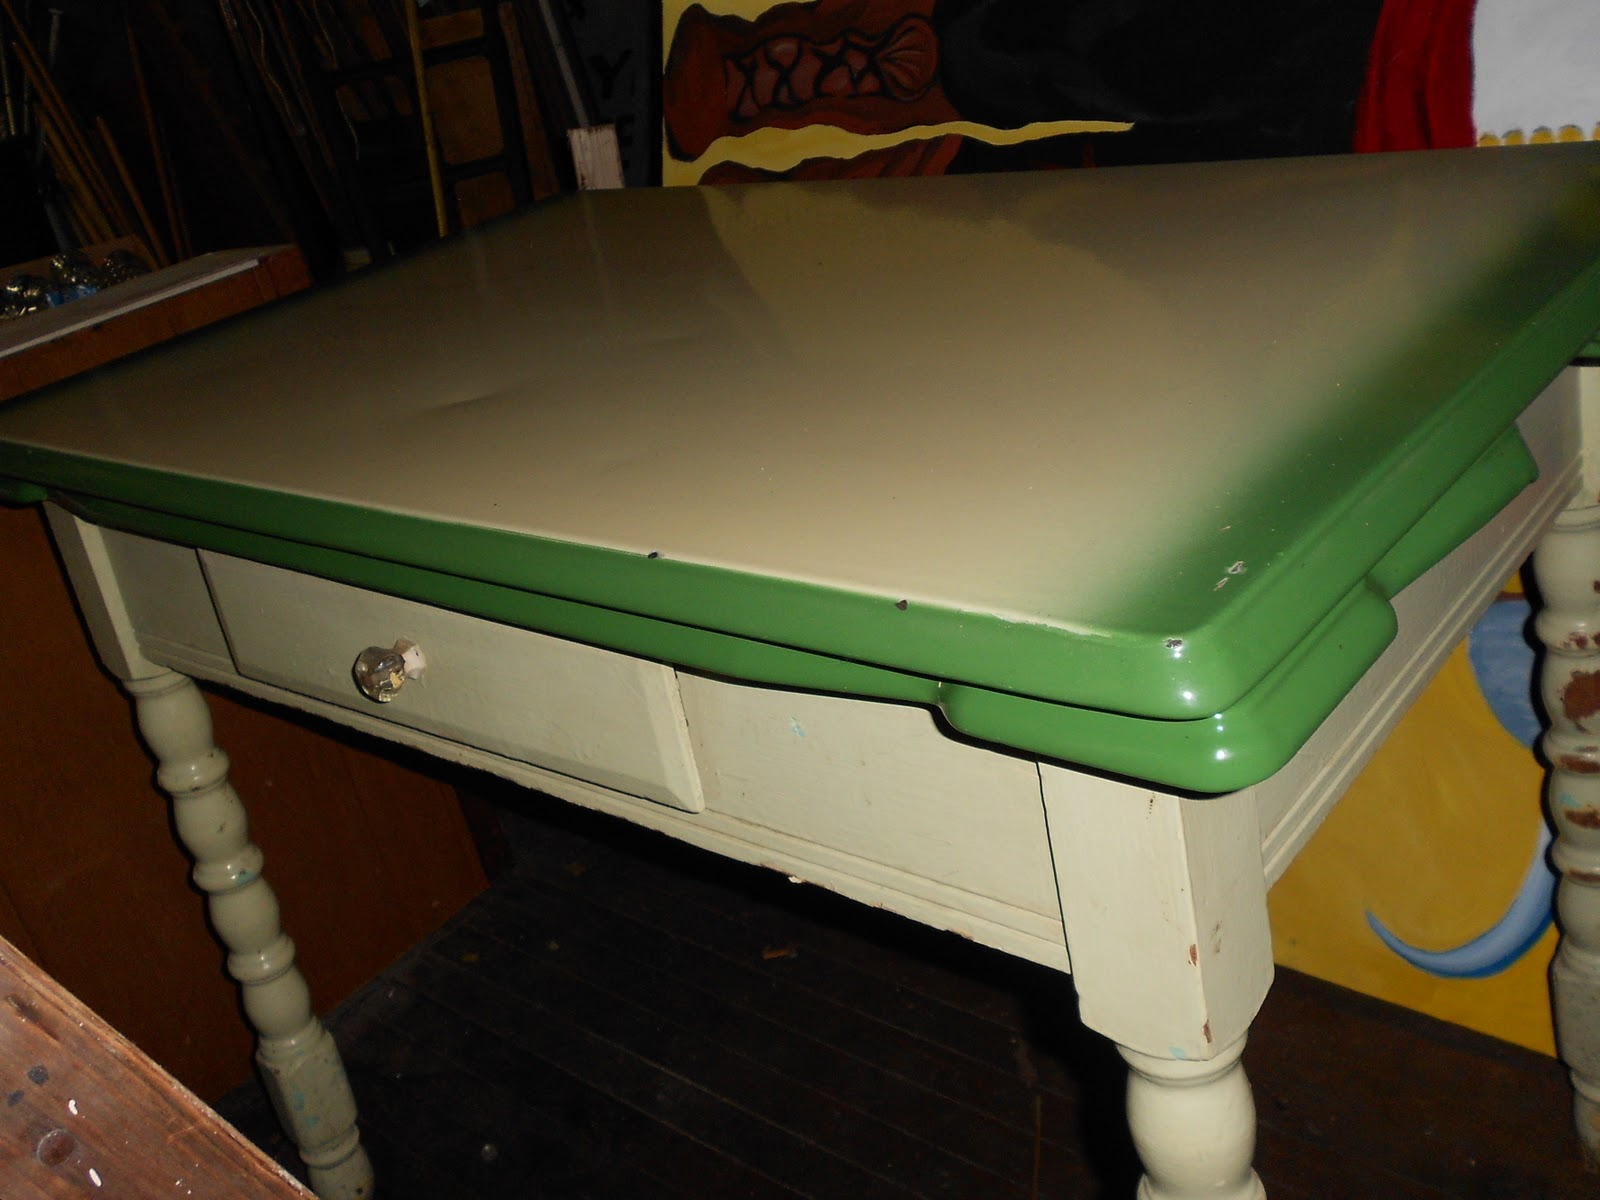 vintage retro metal top green kitchen table with fold out leafs - Green Kitchen Table